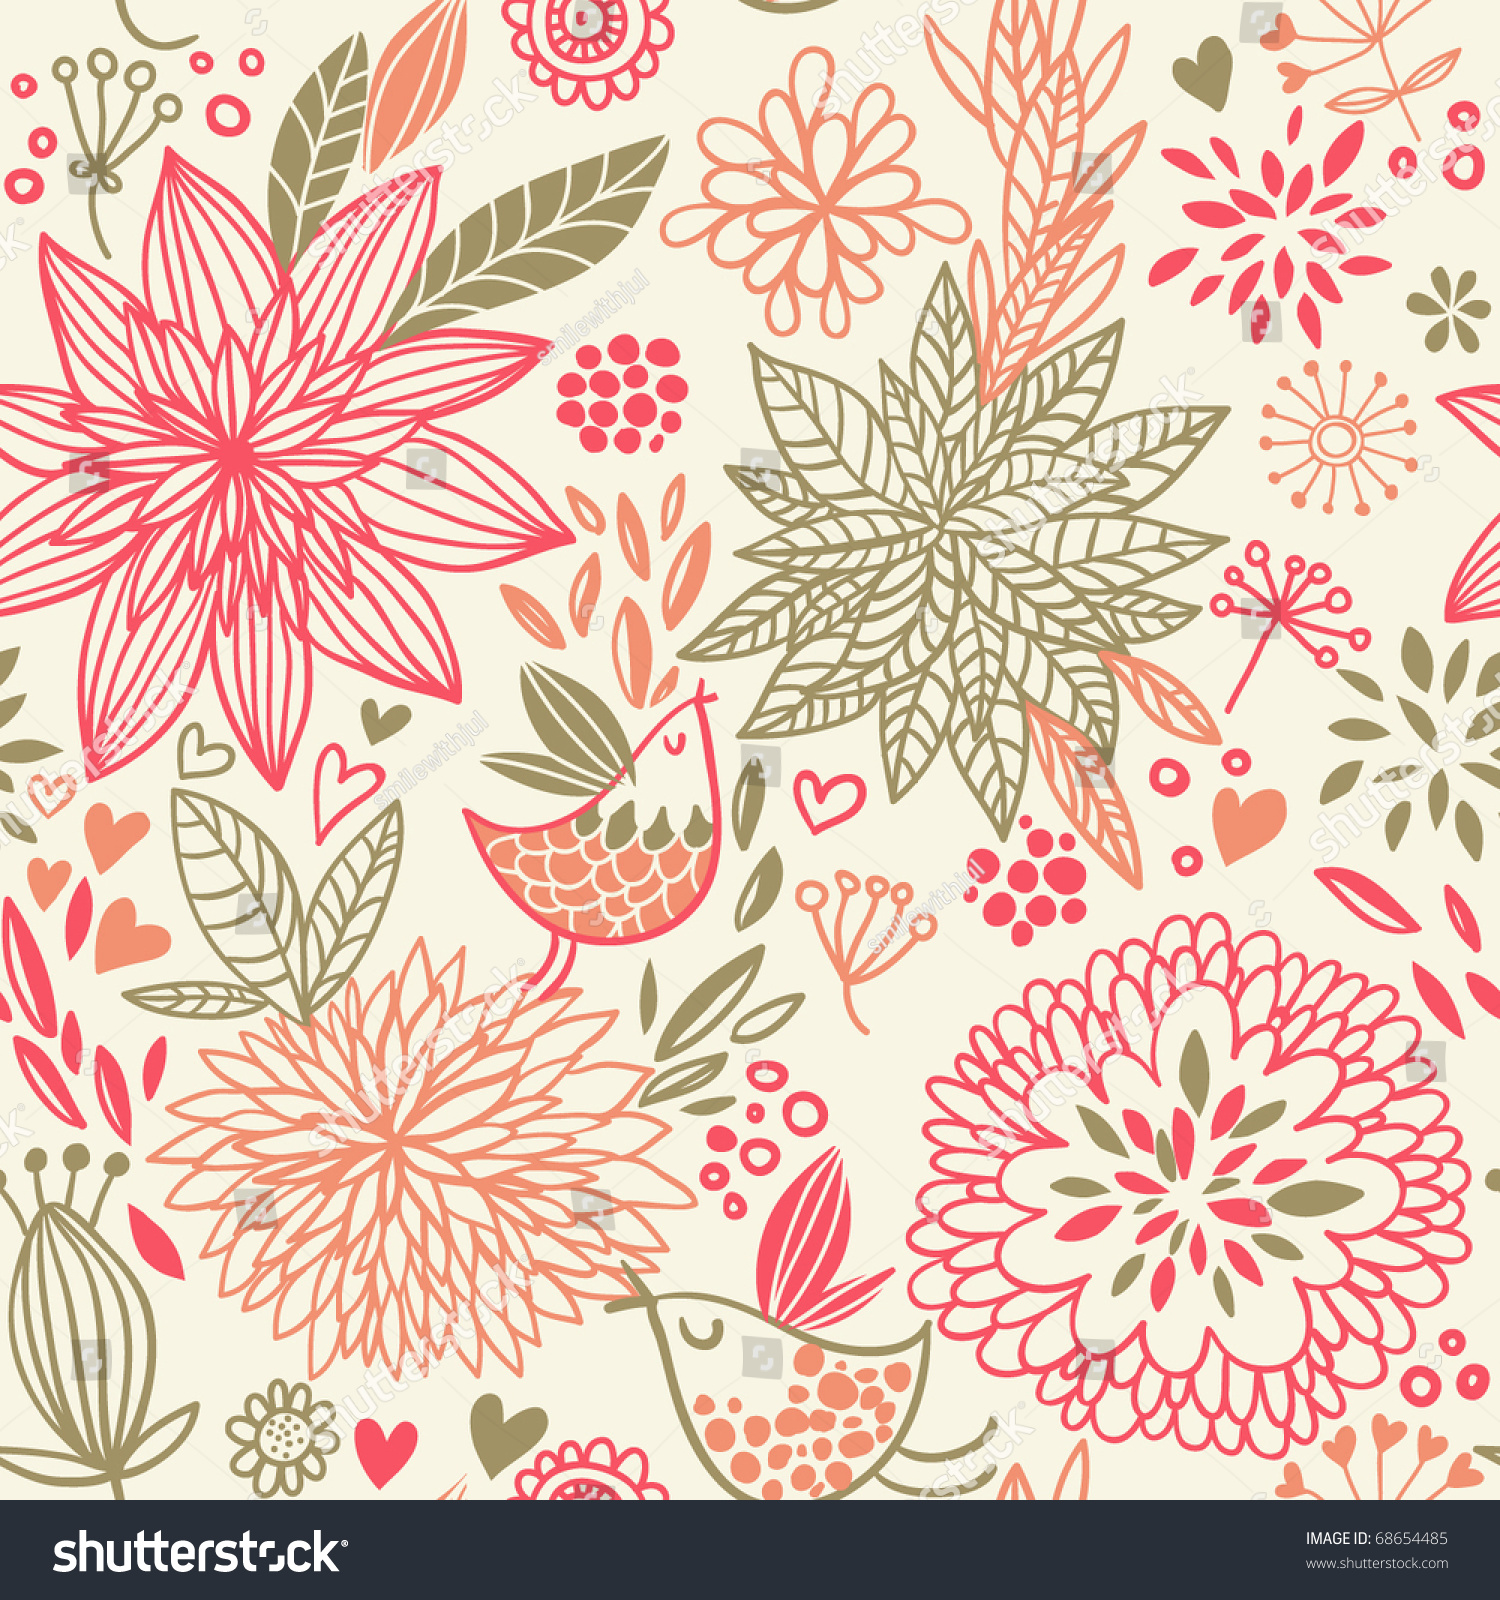 Fall Leaves Clip Art Wallpaper Spring Floral Design Pattern Stock Vector 68654485